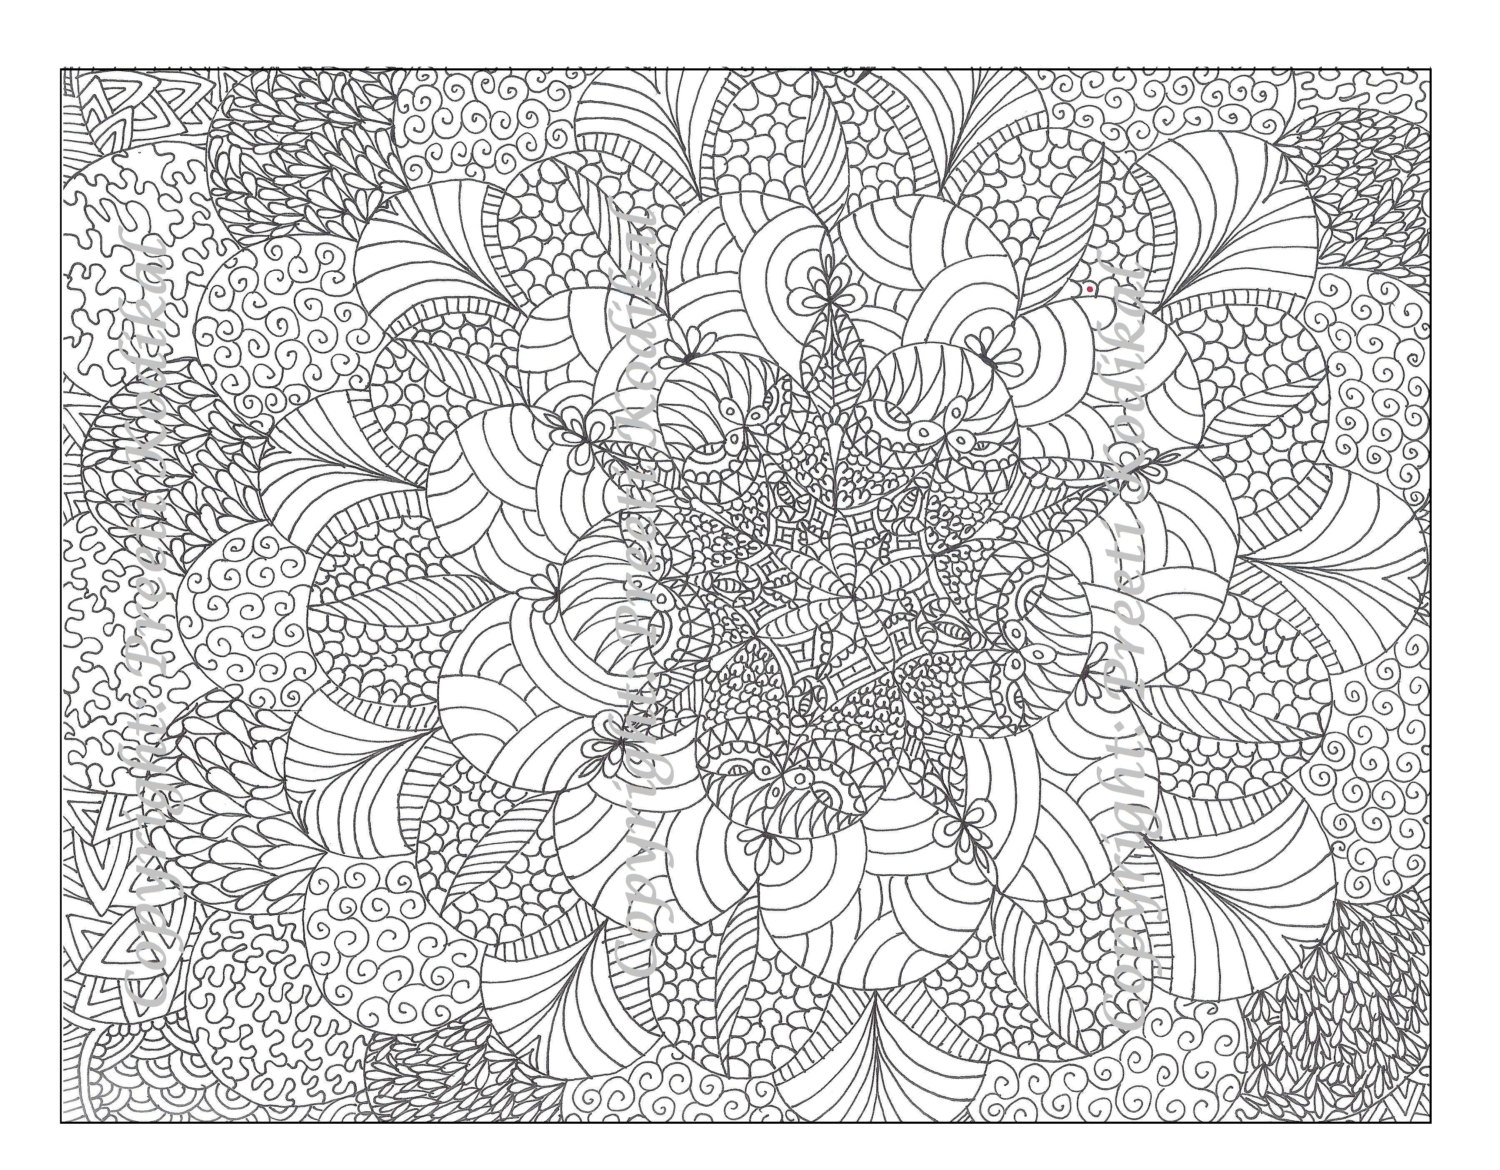 detailed coloring pages printable - Difficult Coloring Pages